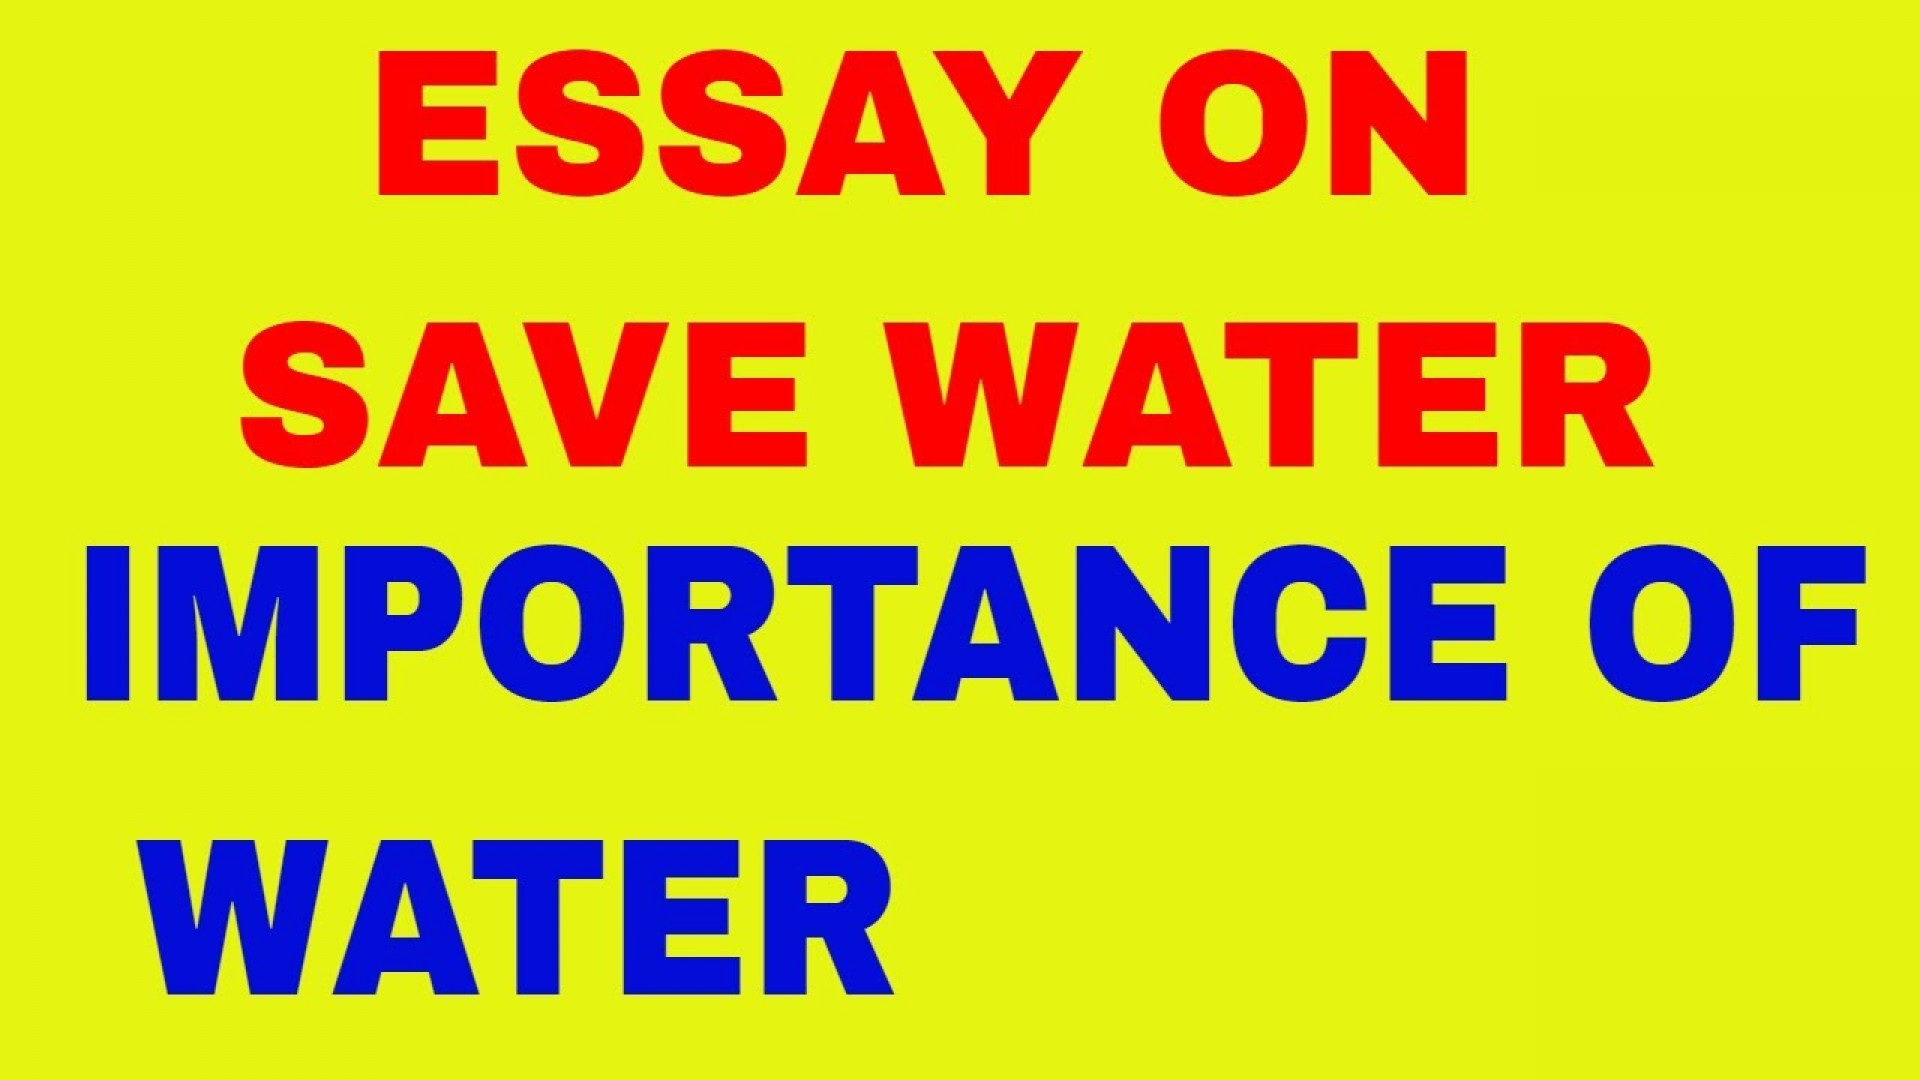 003 Essay Example Maxresdefault On Unbelievable Water Conservation Pollution In Hindi Crisis Pakistan 300 Words 1920